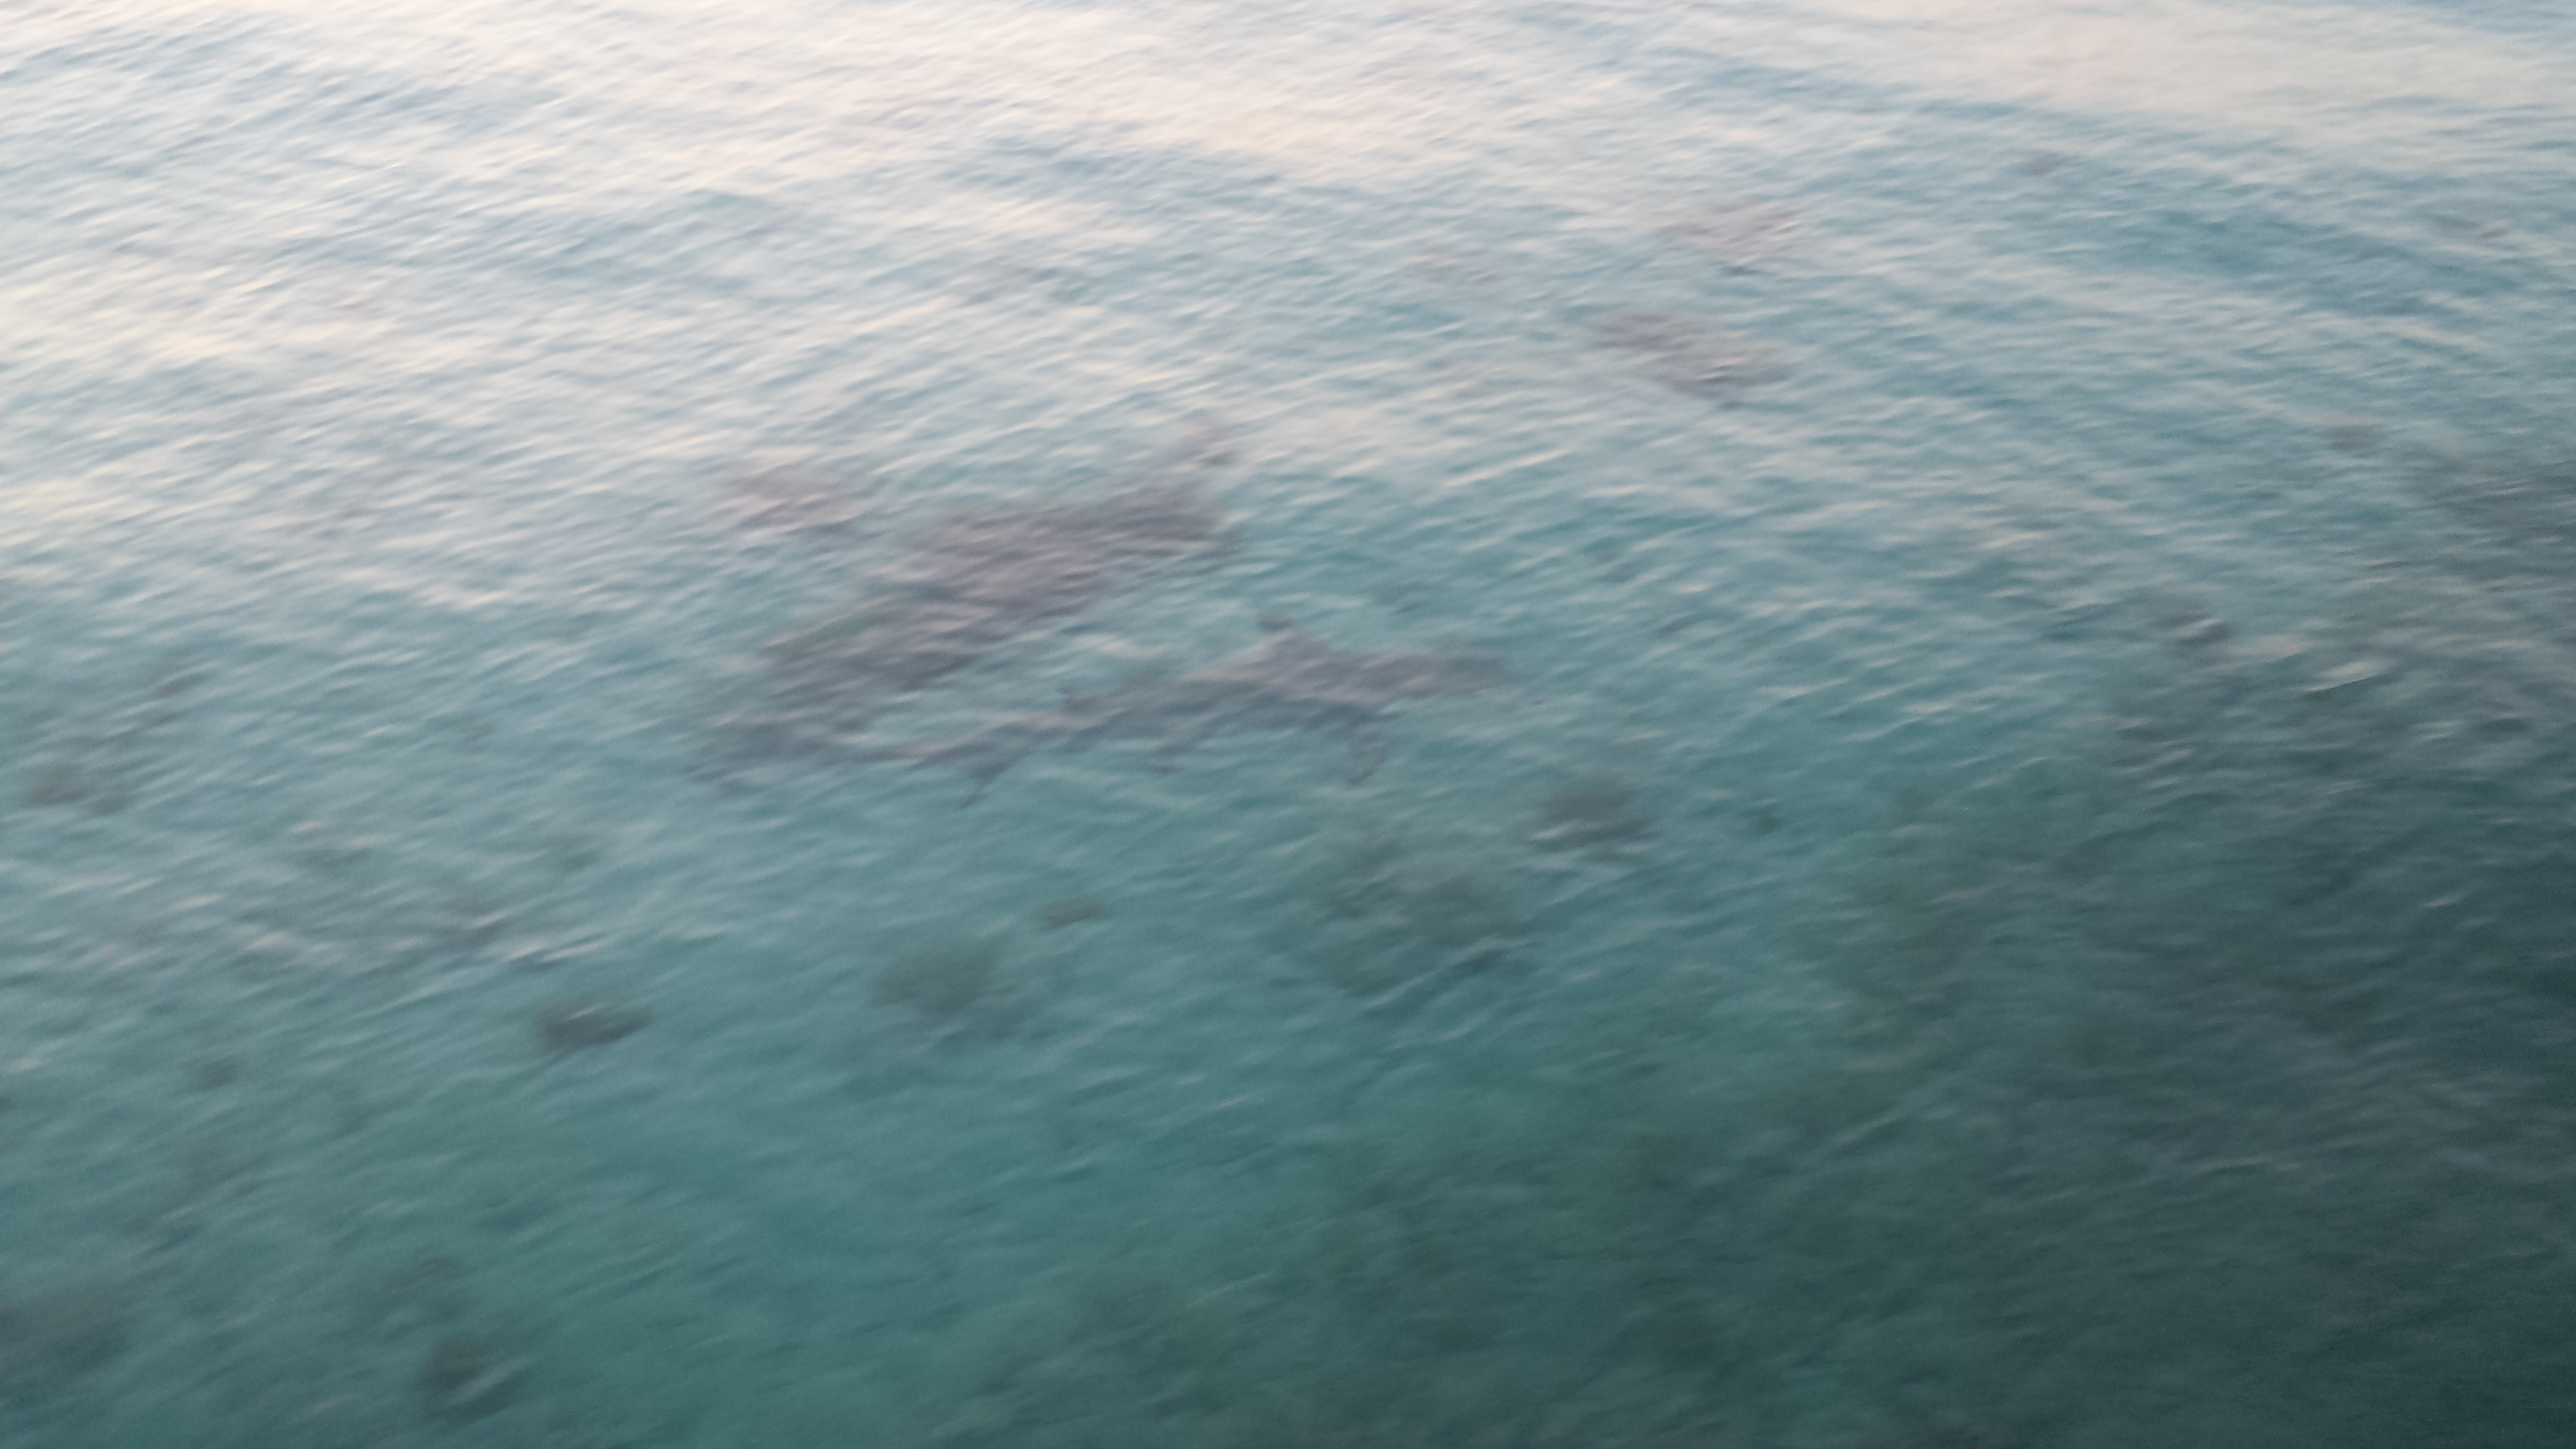 Looking down through the surface of the water as a hammerhead shark swimming through the ocean